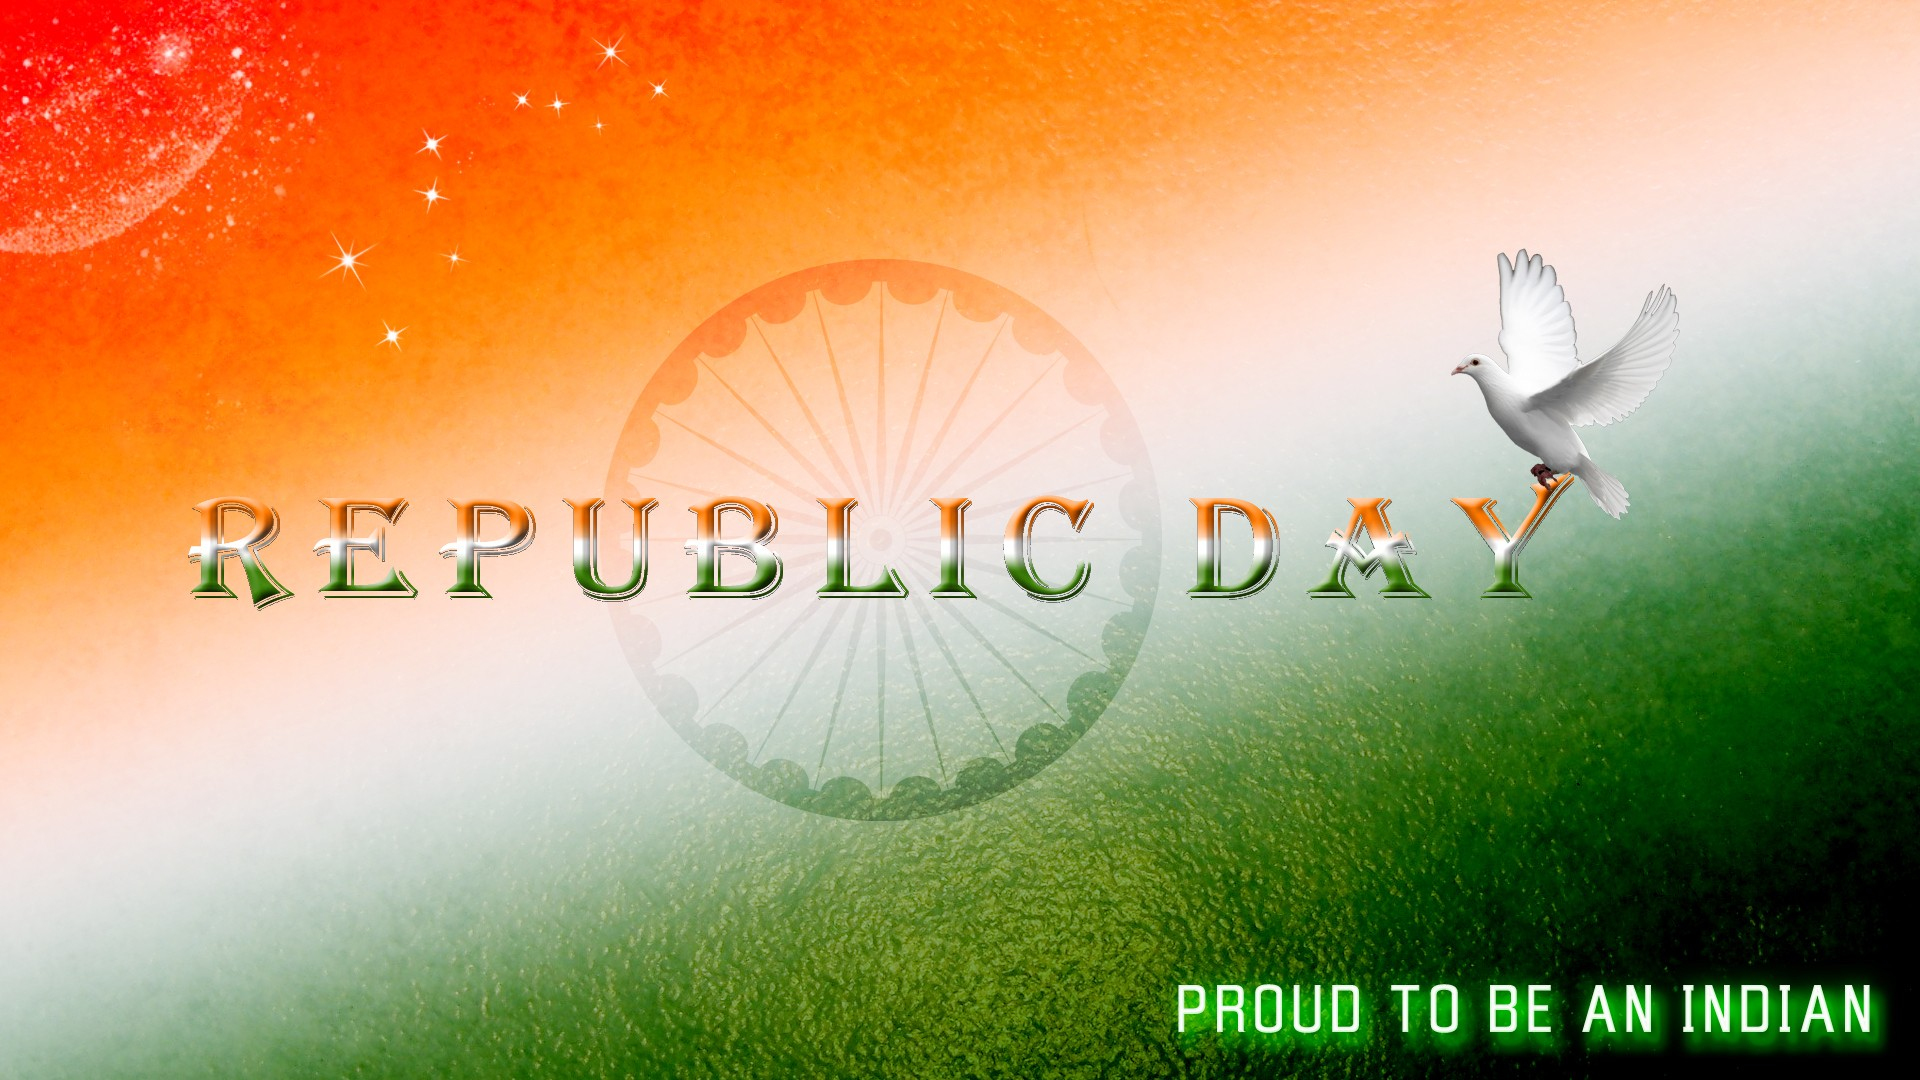 2016 India Republic Day Hd Wallpapers Images Free Download